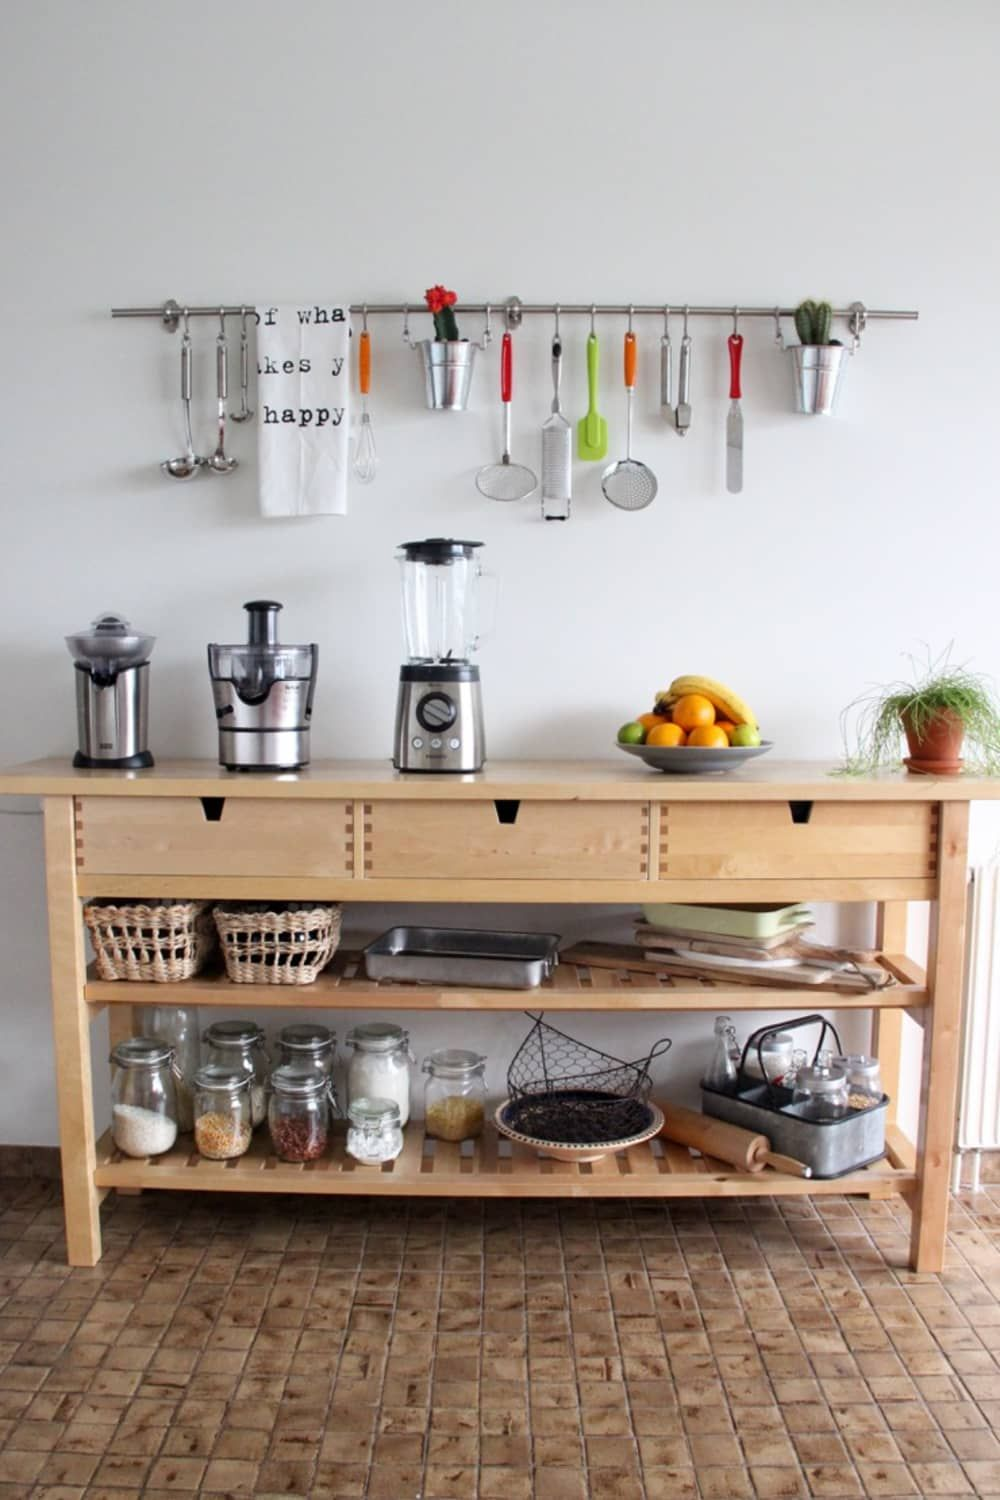 9 Clever IKEA Hacks to Help You Make the Most of Your Tiny Kitchen